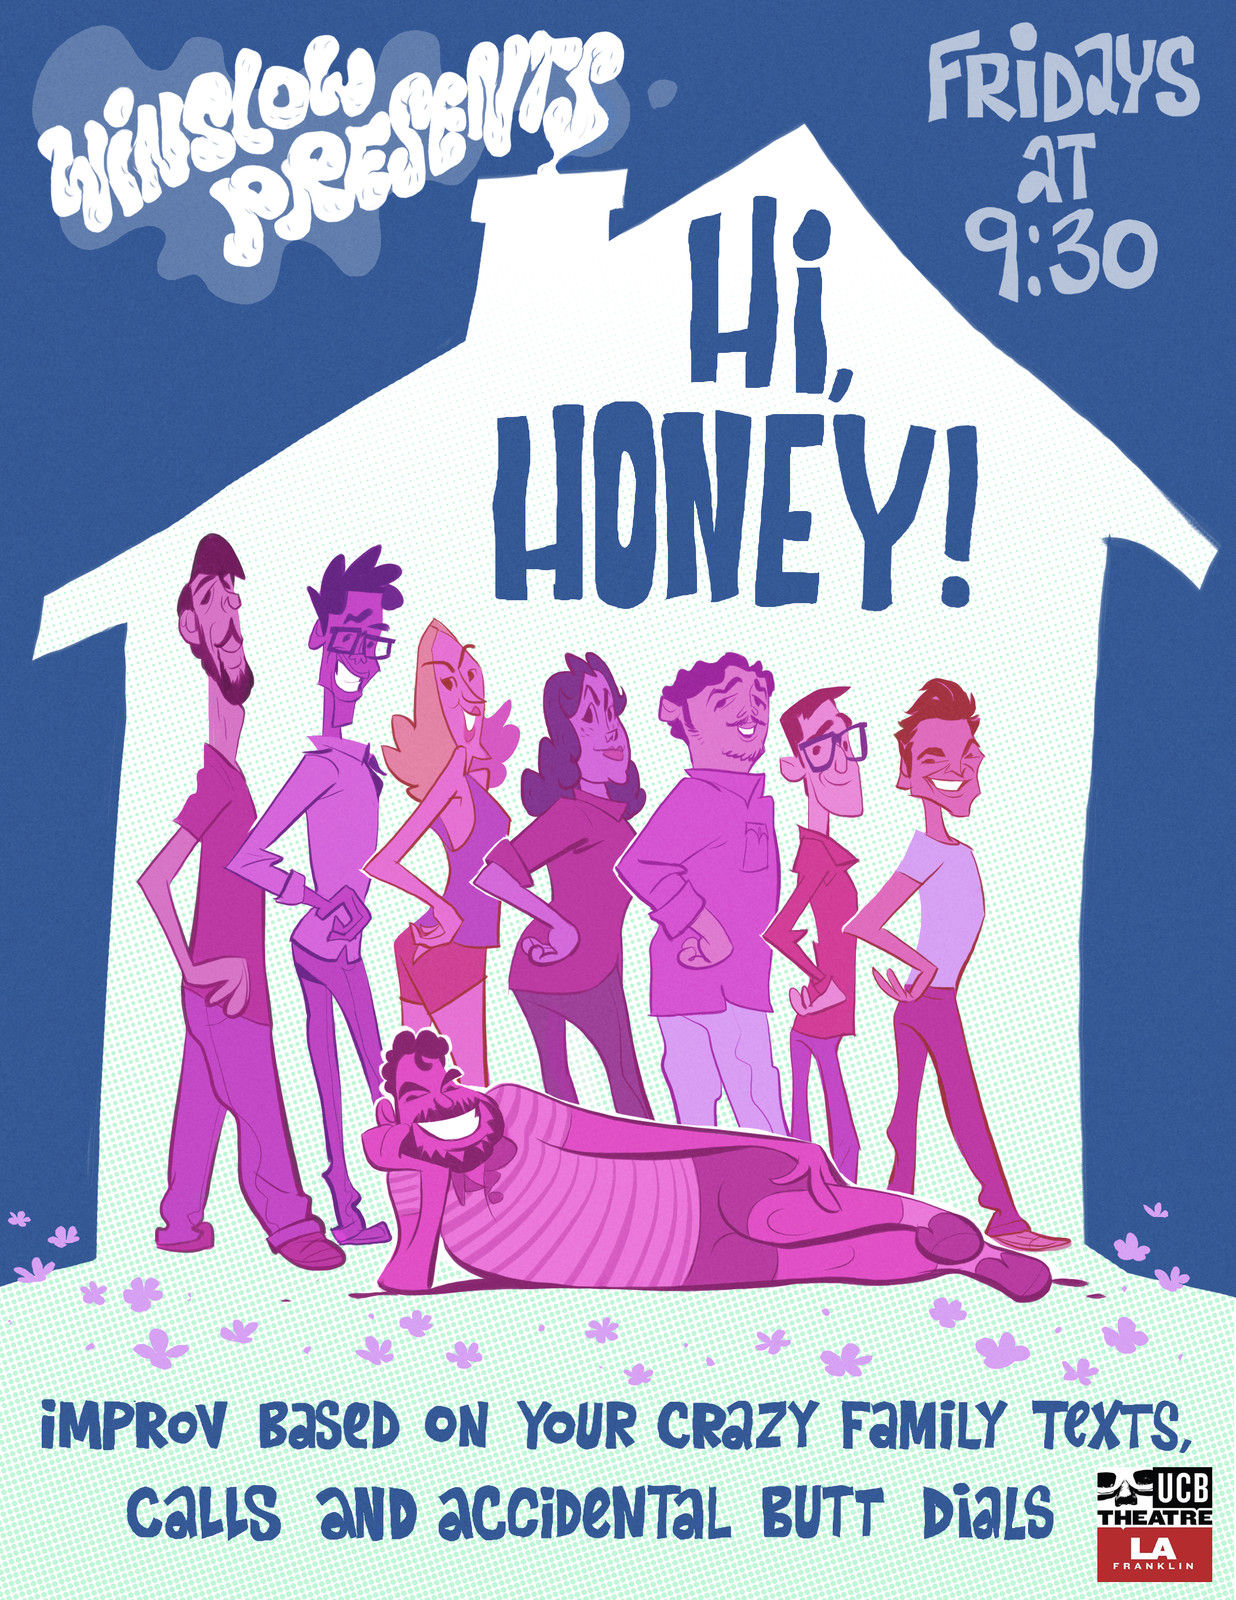 UCB Hi Honey Poster!